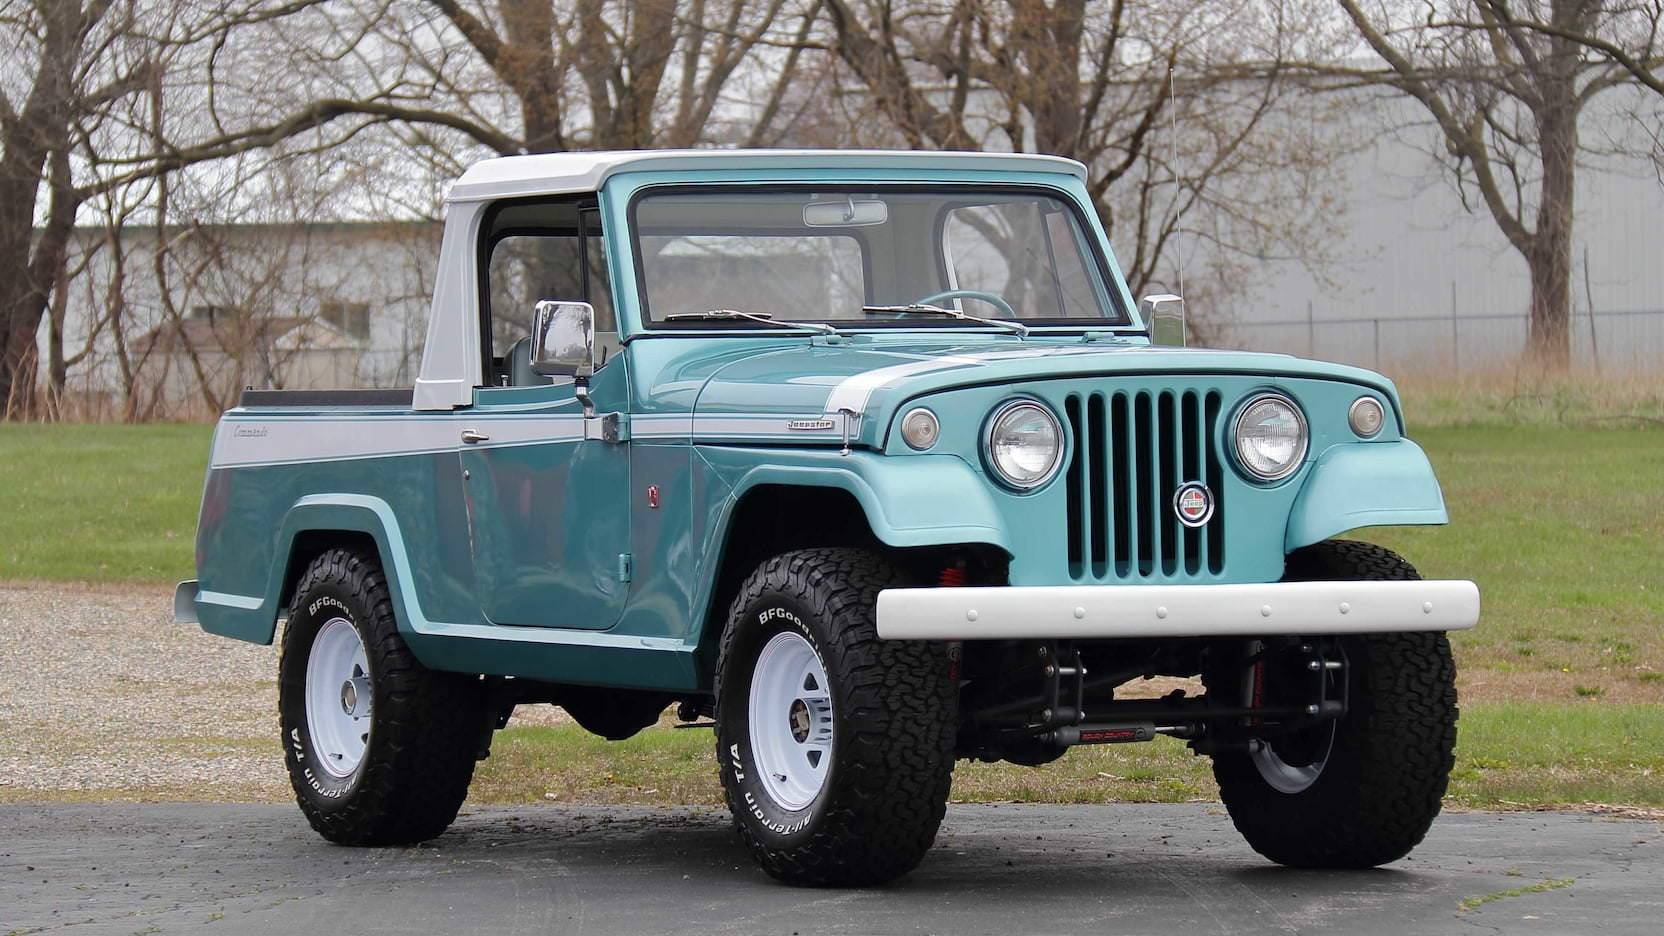 The Jeepster Commando - A 1960s 4x4 Icon Built To Challenge The Bronco + Scout